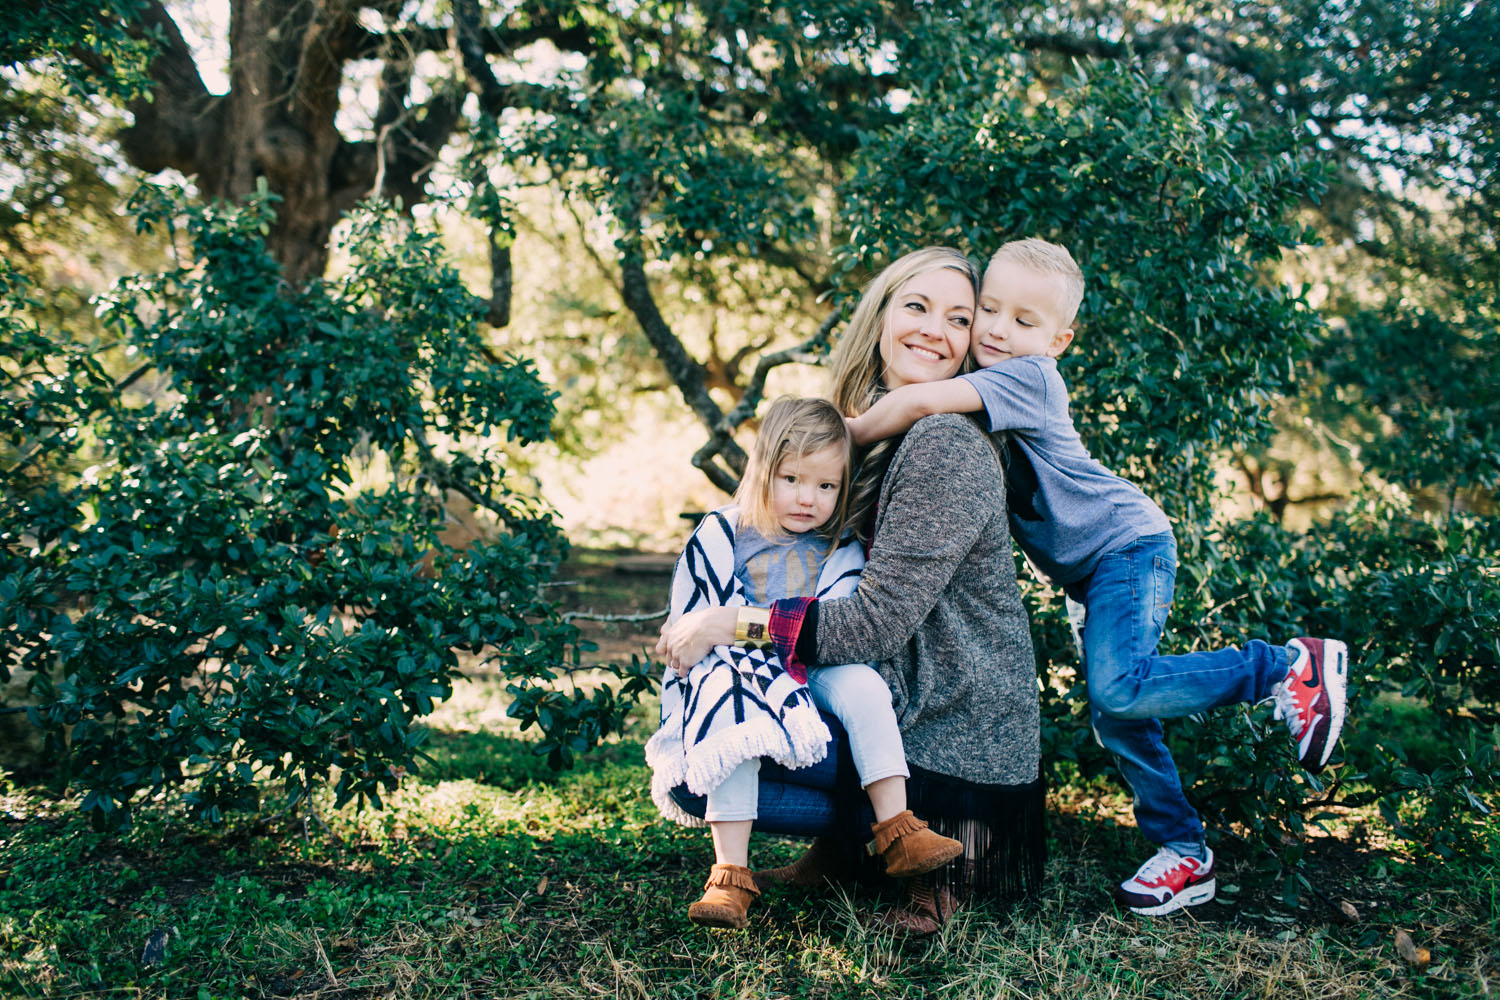 Mother & Kids | Family Portraits | Lisa Woods Photography